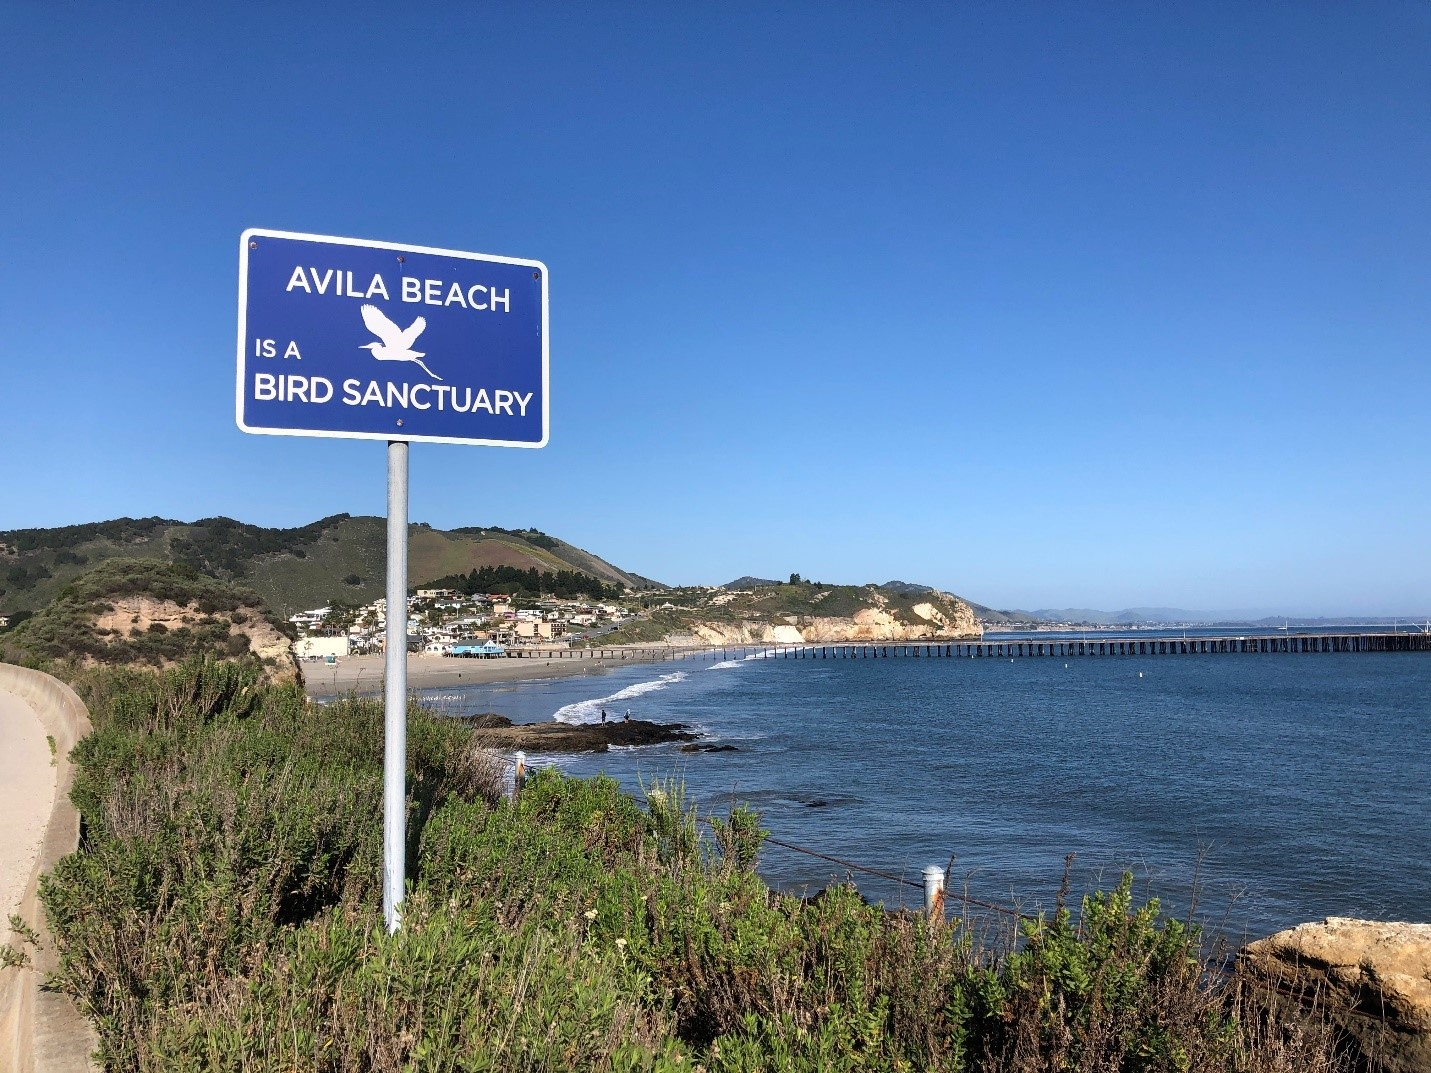 Avila Beach is a Bird Sanctuary Sign in the foreground with the town of Avila Beach and the ocean in the distance